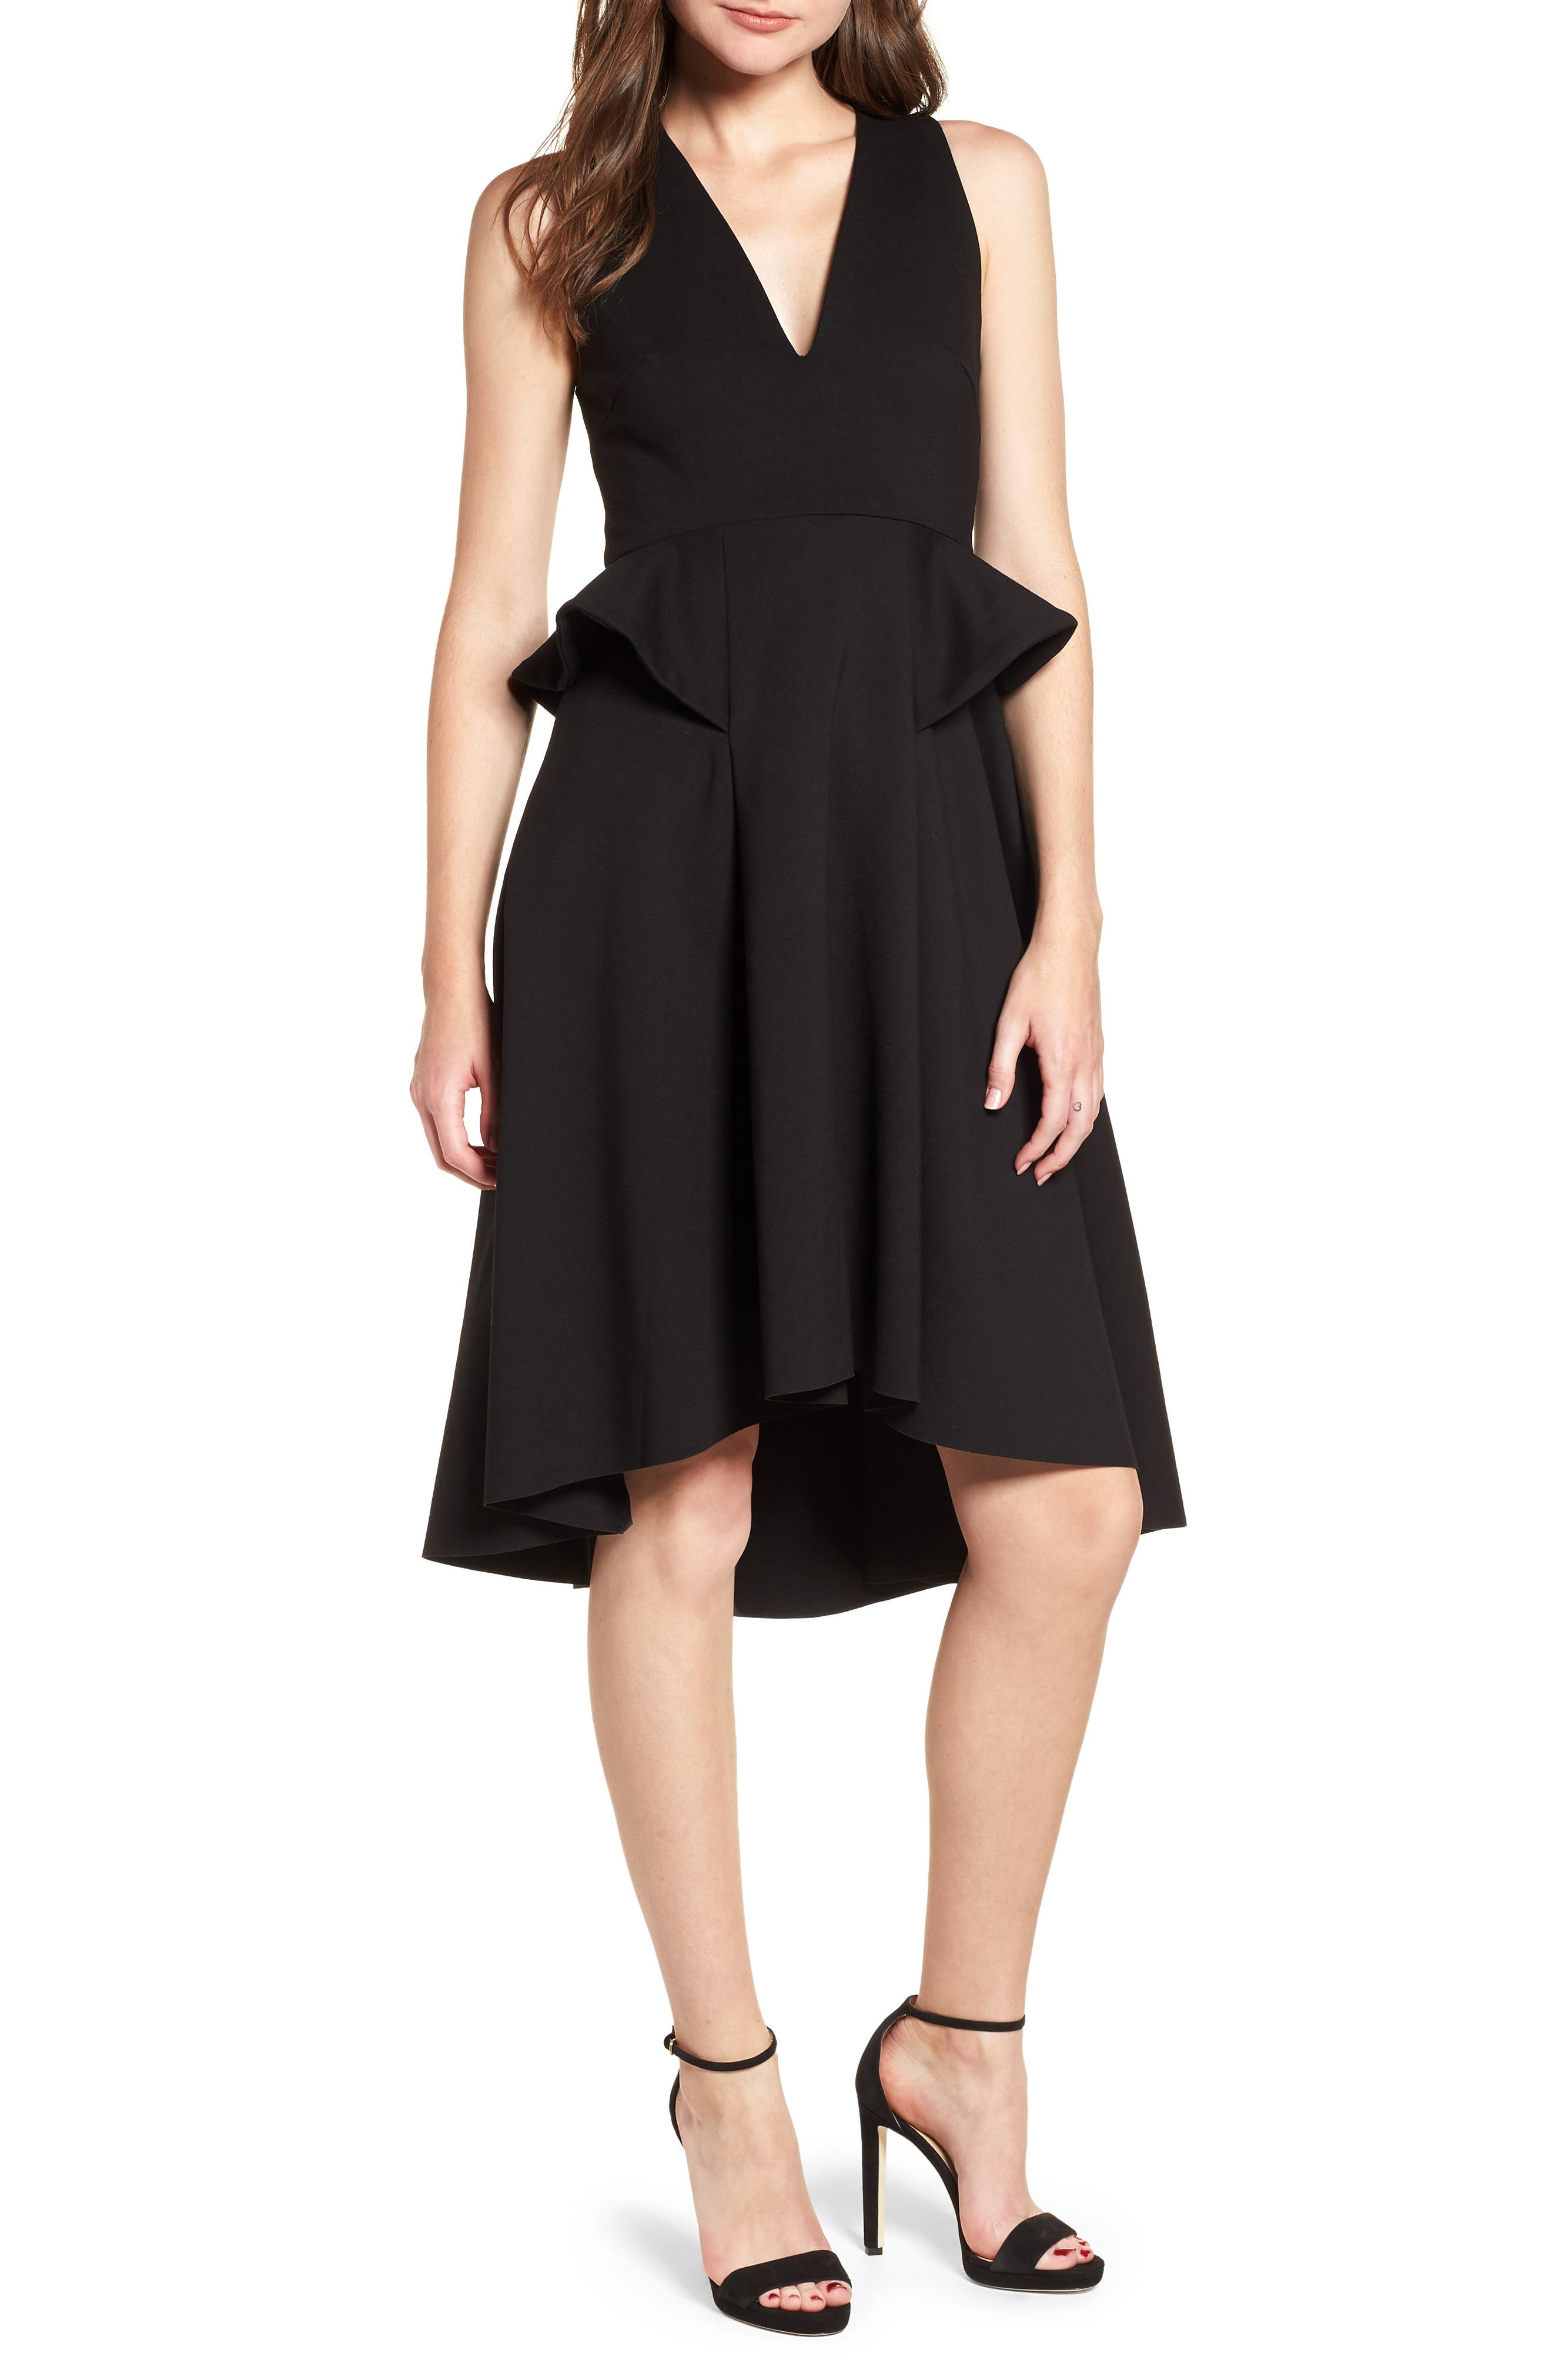 Rapture Ruffle Dress,                         Main,                         color, Black